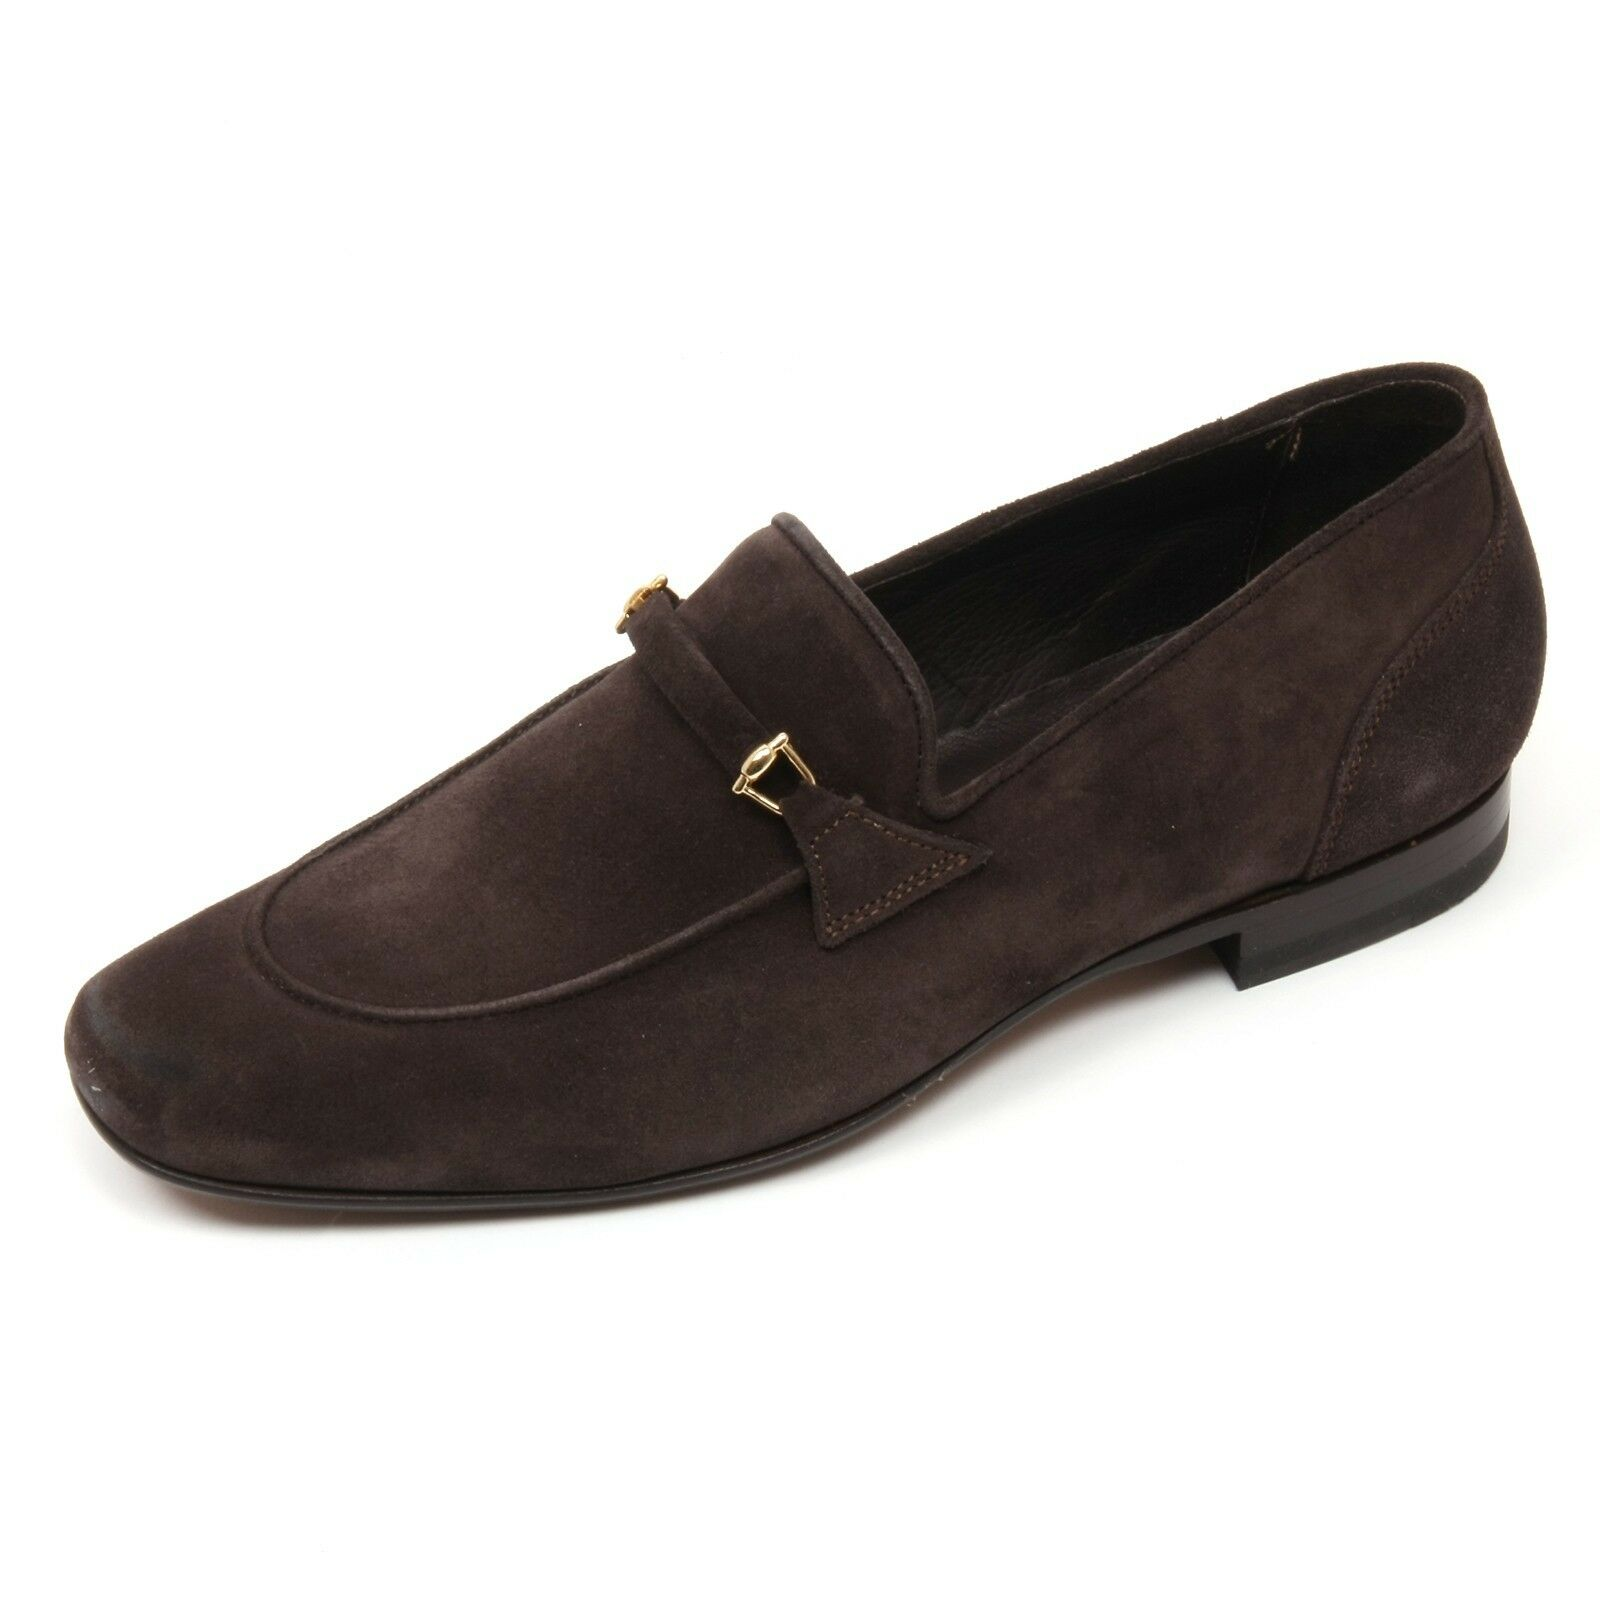 C3808 mocassino uomo ALTIERI MILANO scarpe marrone scuro loafer shoe man